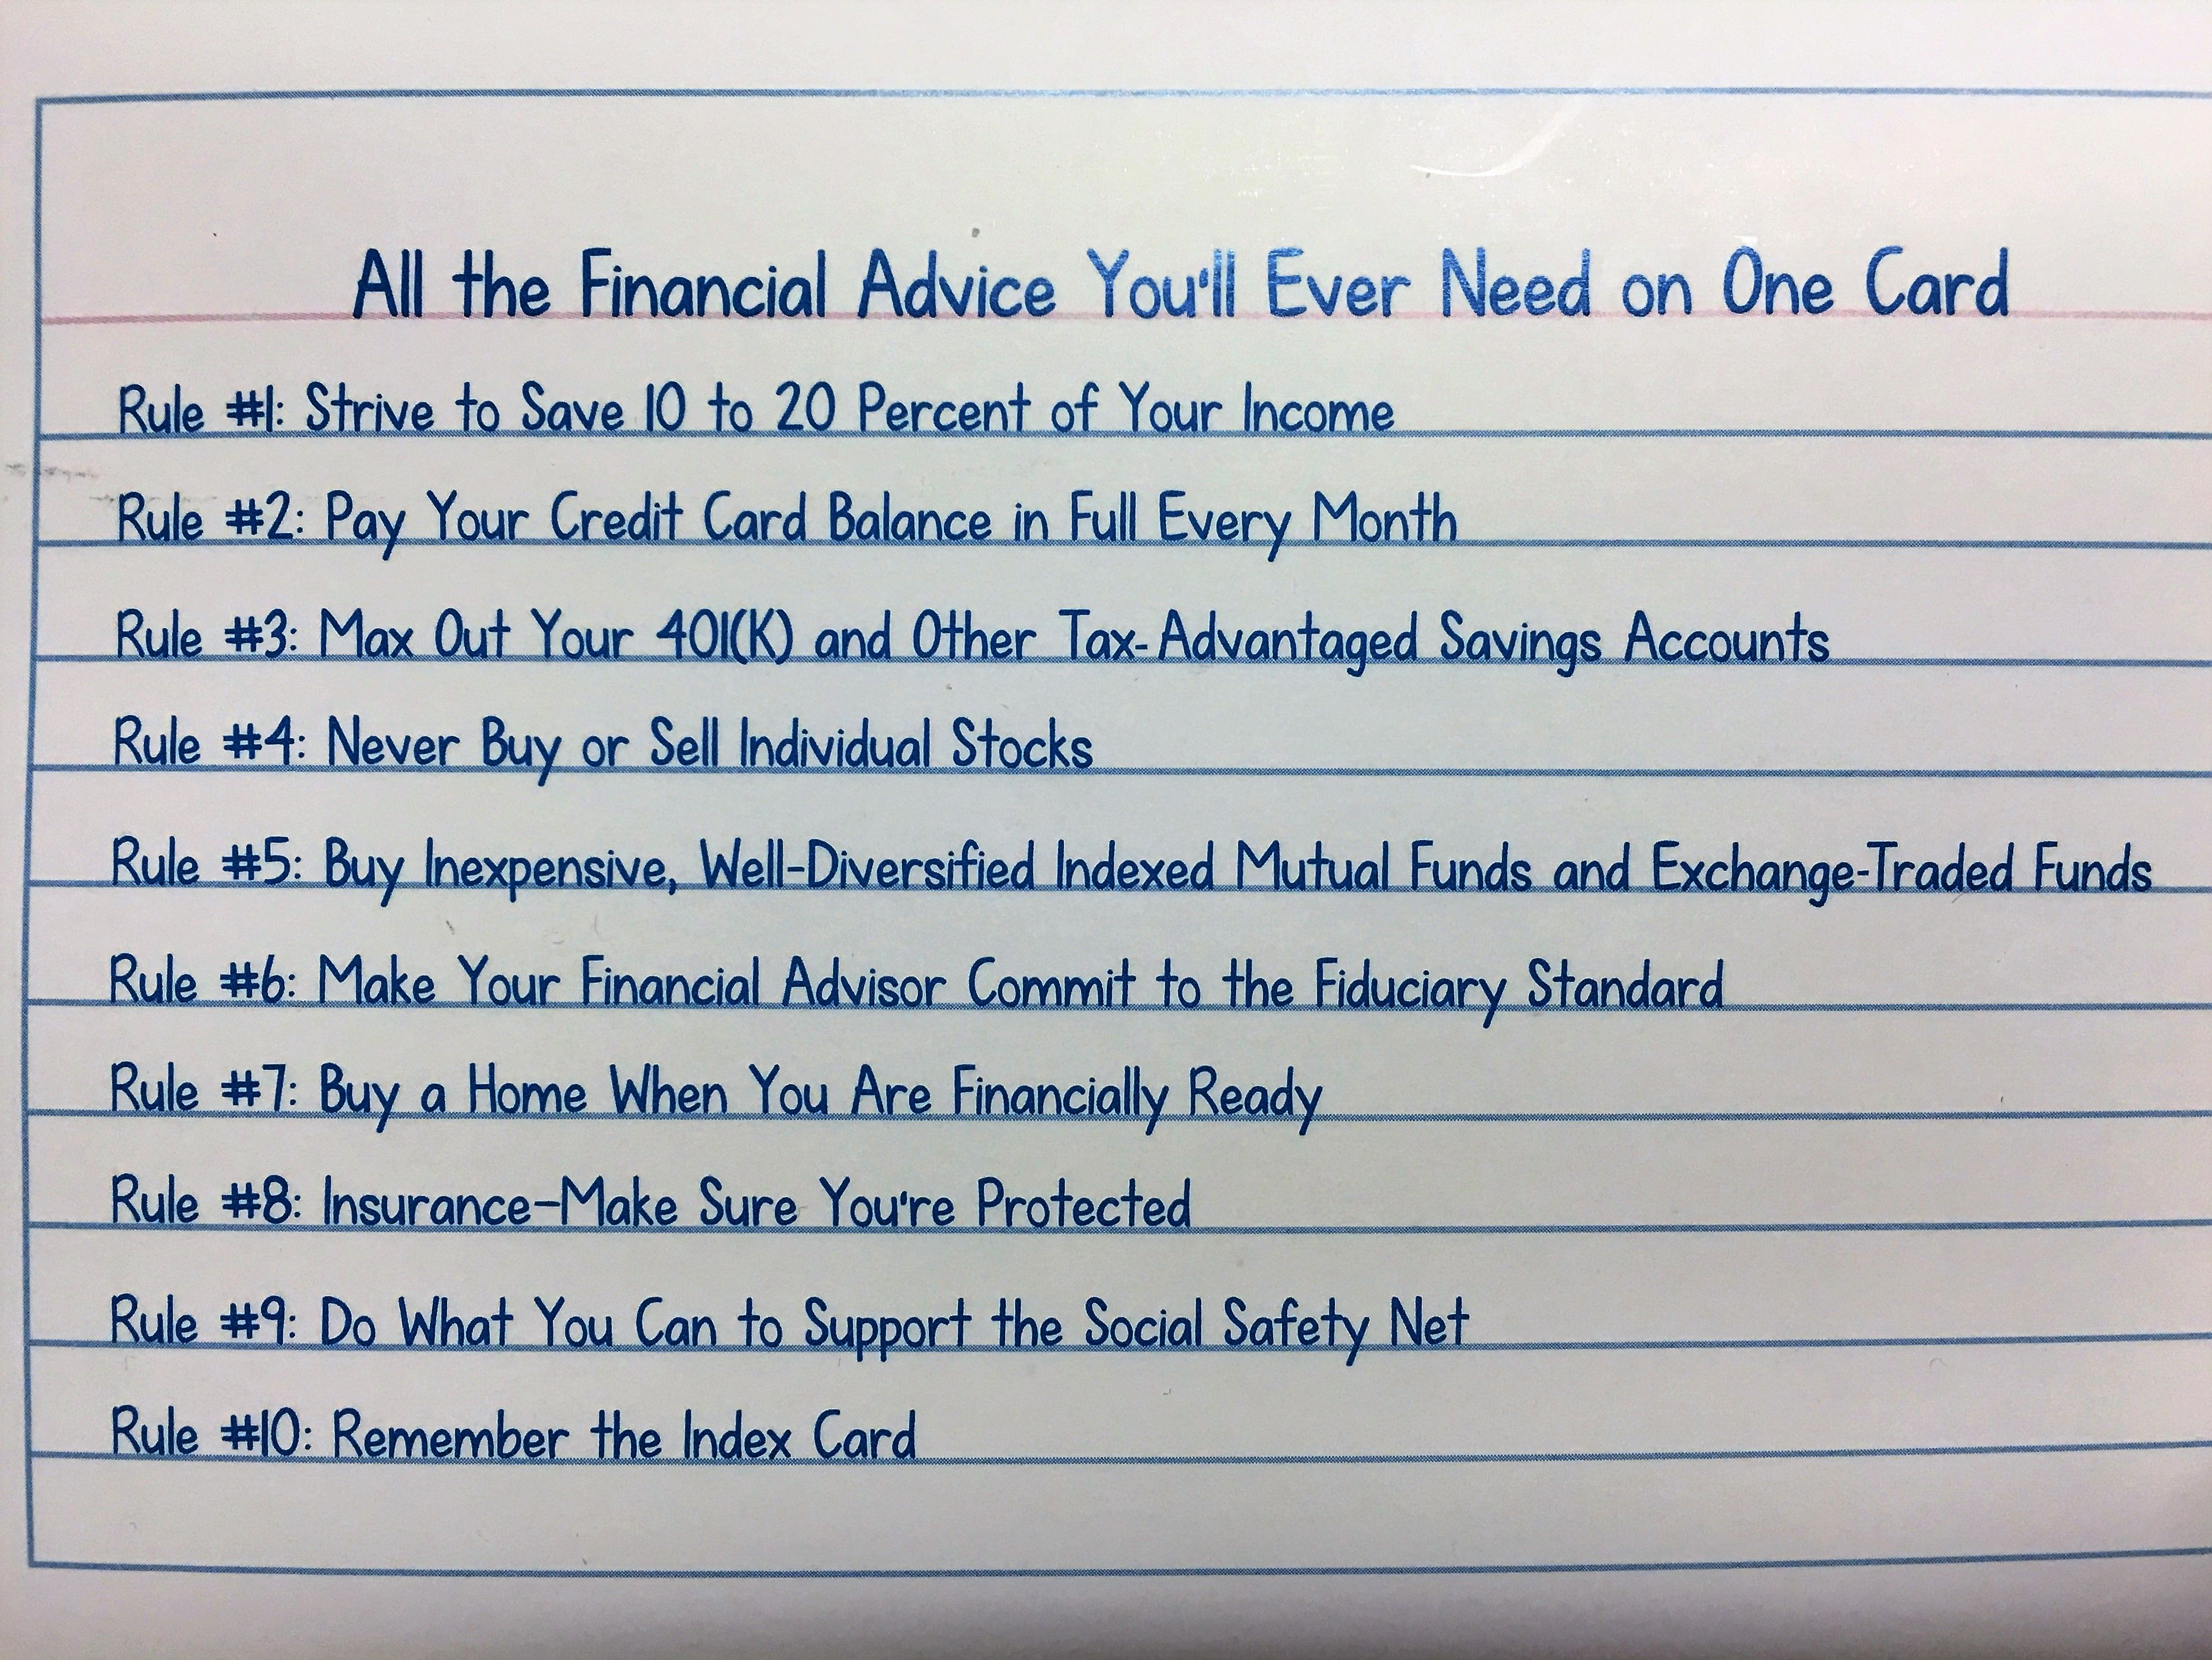 Index card investment advice largest financial investment companies